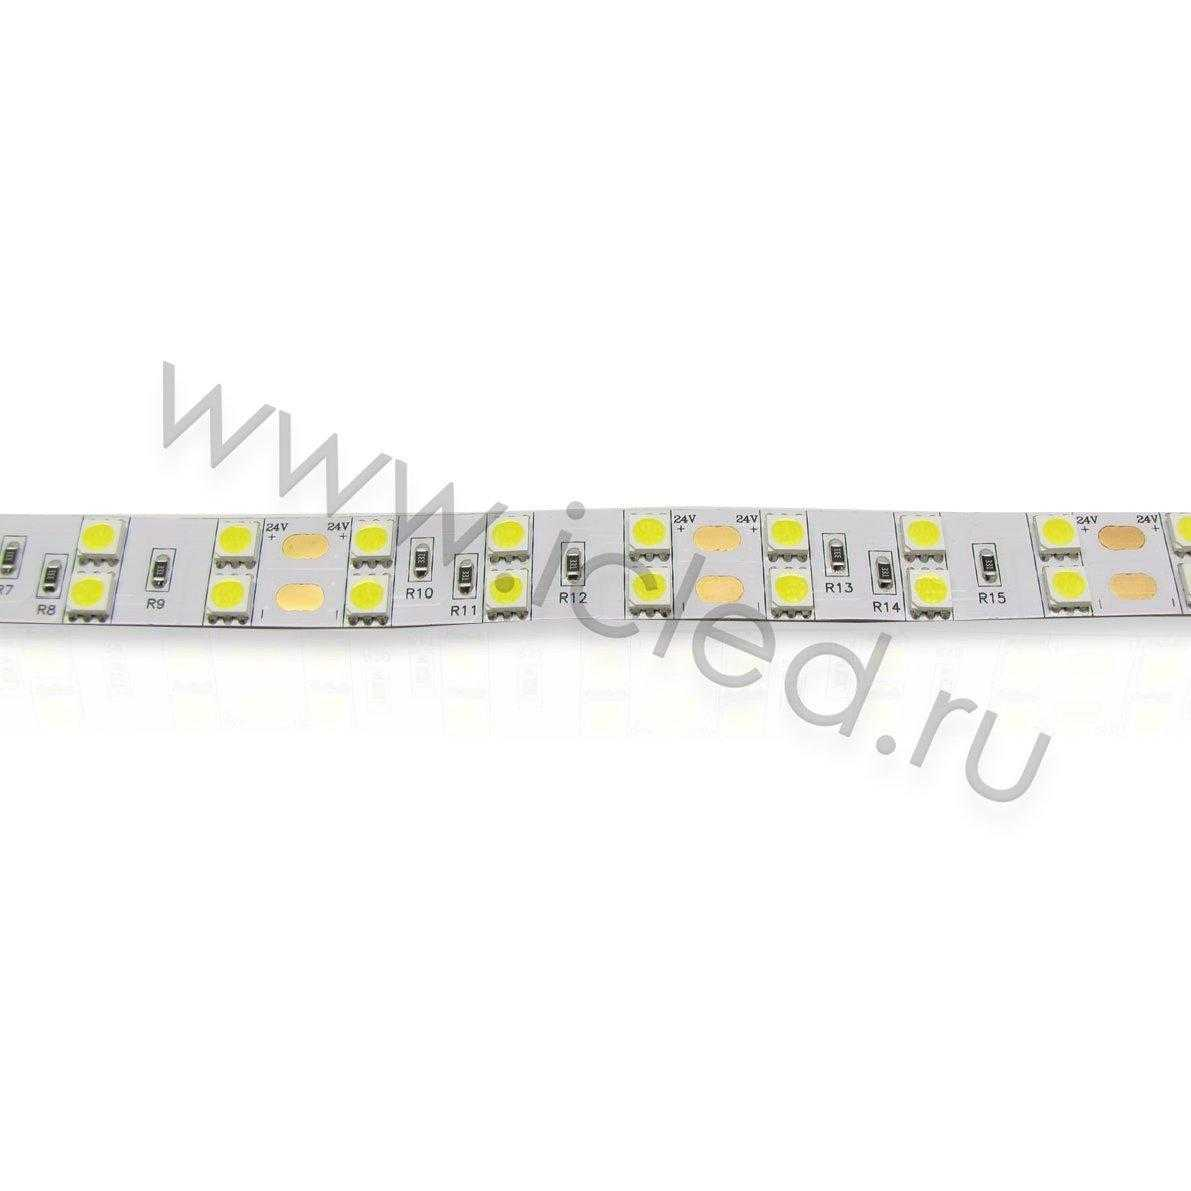 Светодиодная лента Standart PRO class, 5050, 120 led/m, Day White, 24V, IP33